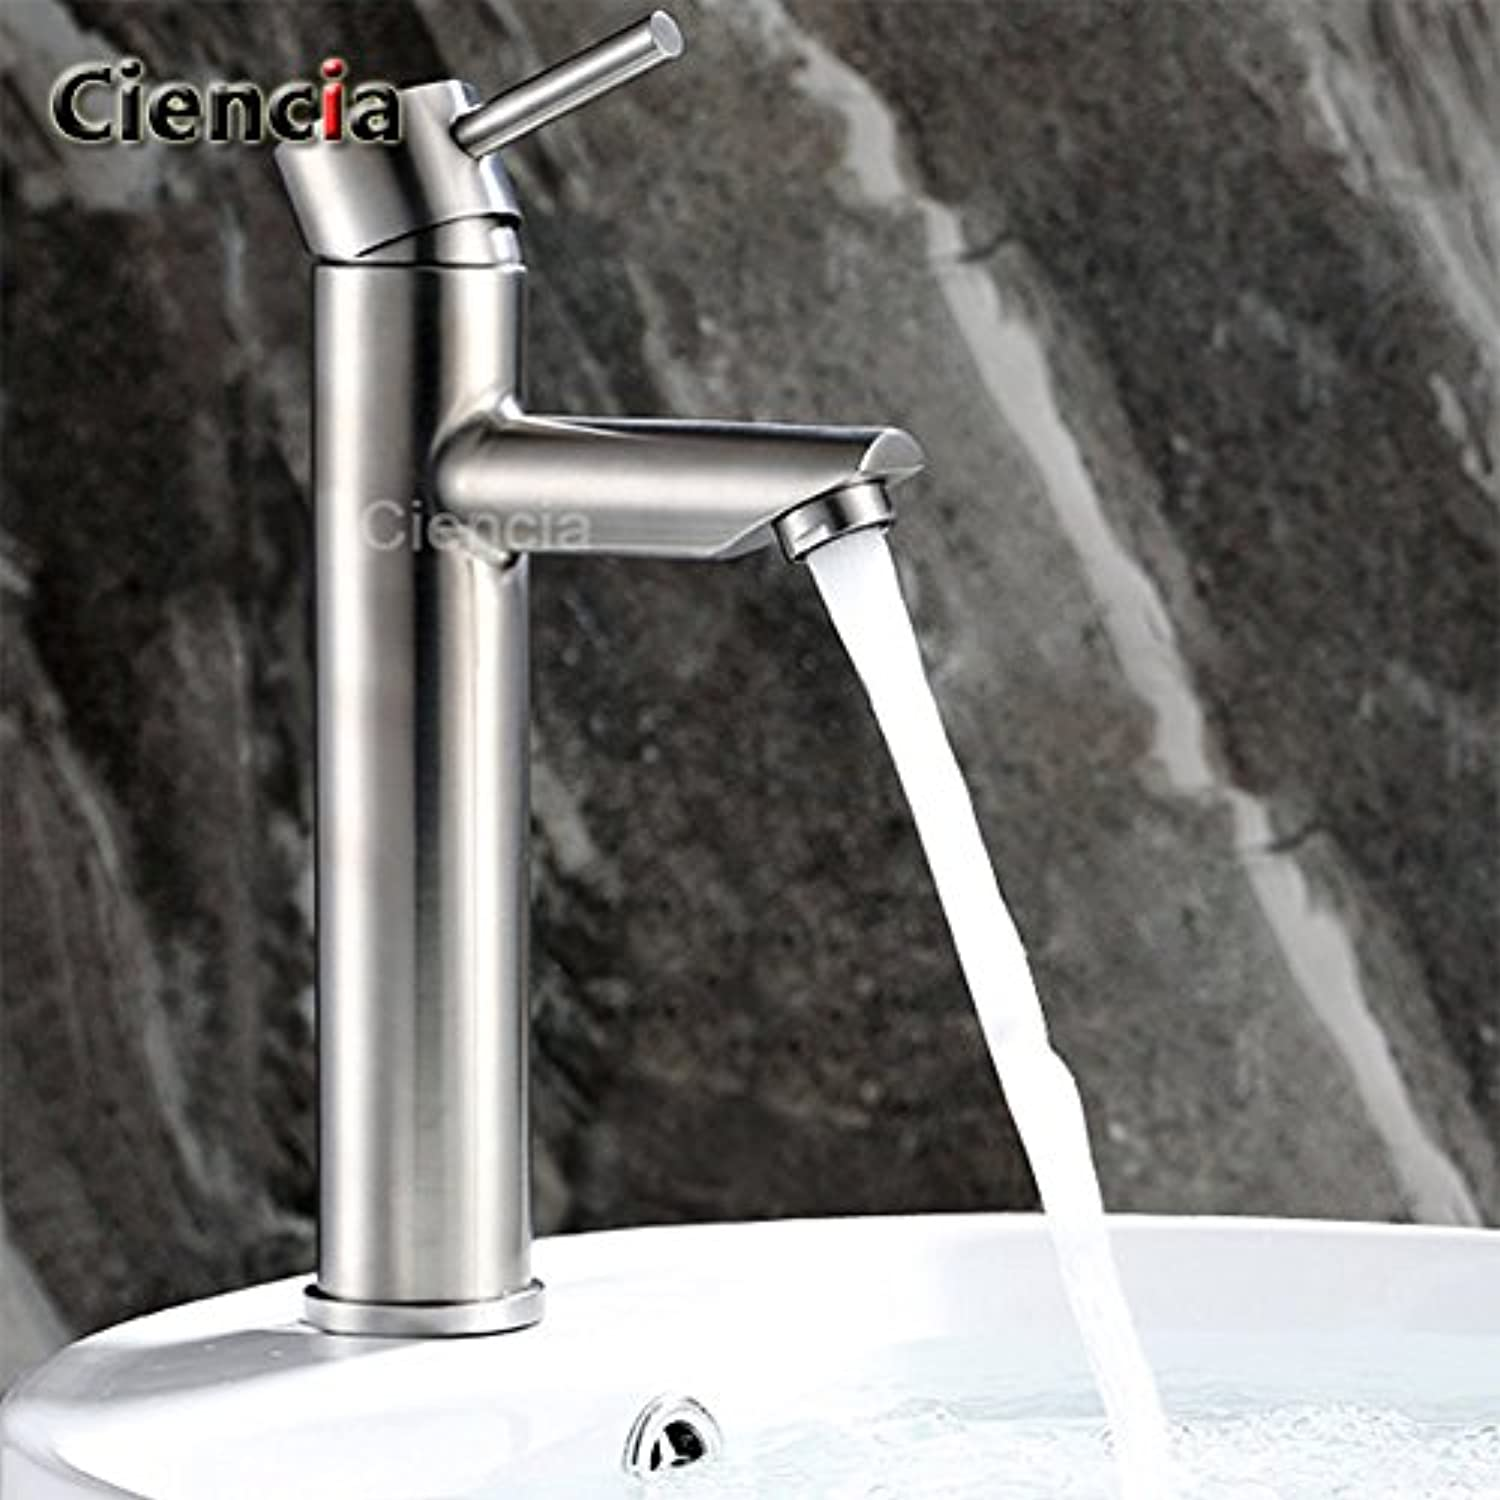 JIAHENGY Sink Mixer Faucet tap Modern fashion simple fashion Chrome Polished Basin Handle Hole Deck Mounted Toilet Kitchen bathroom